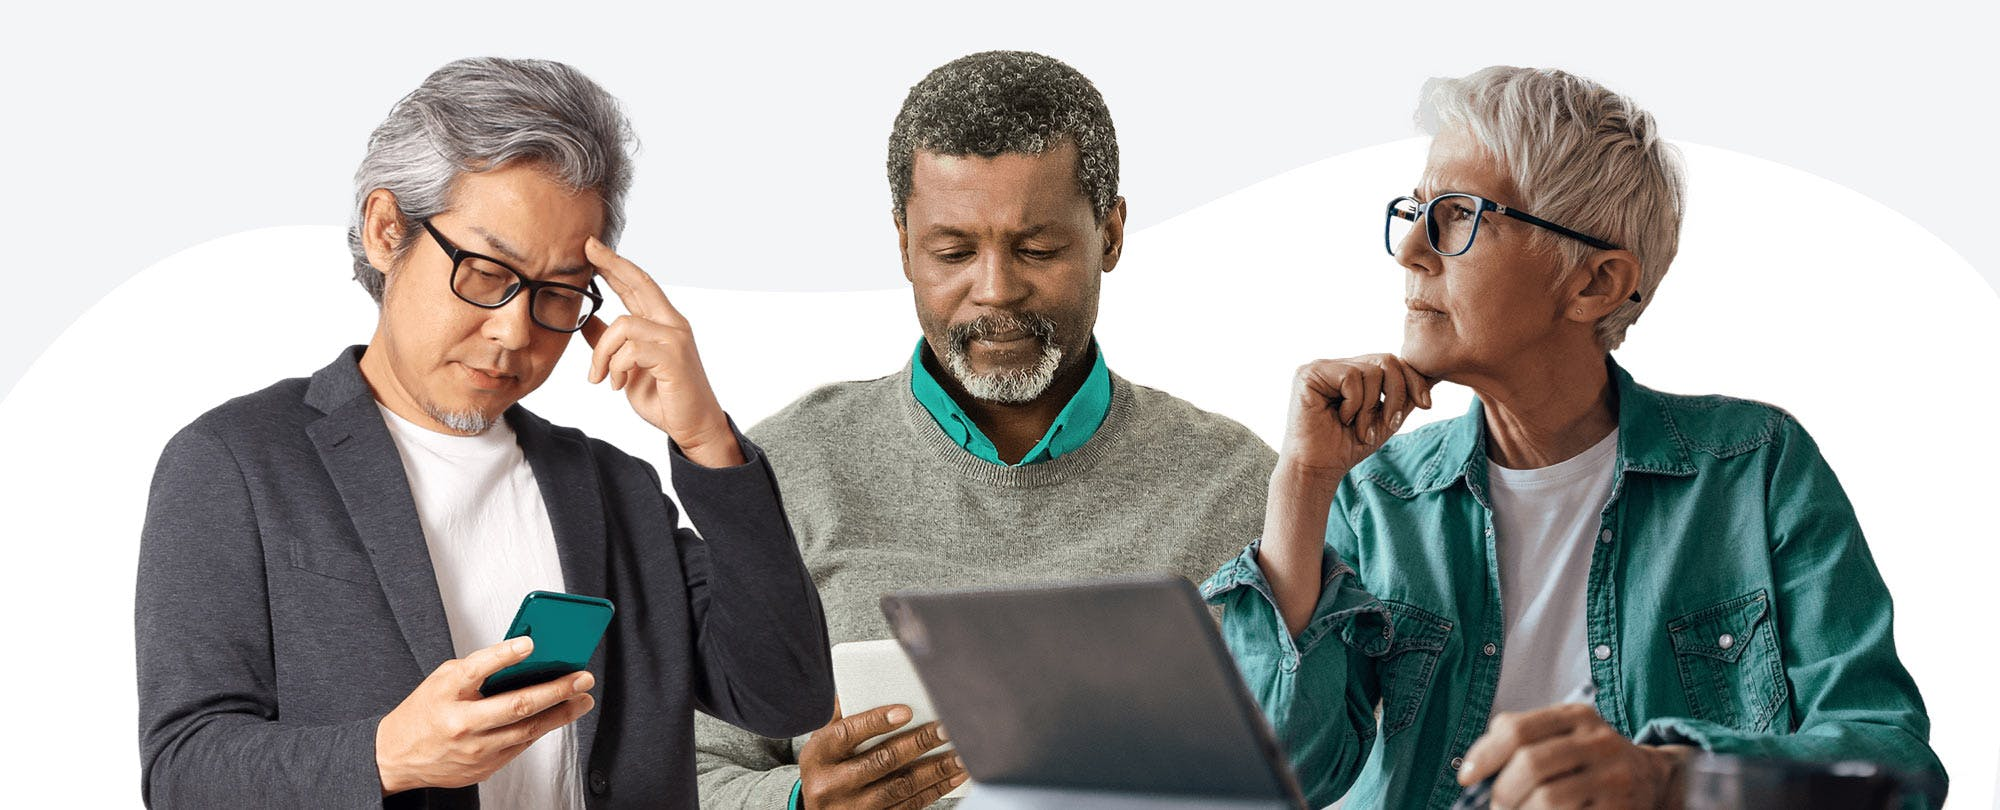 3 senior men and women using smartphones, tablet computers and laptop computers.